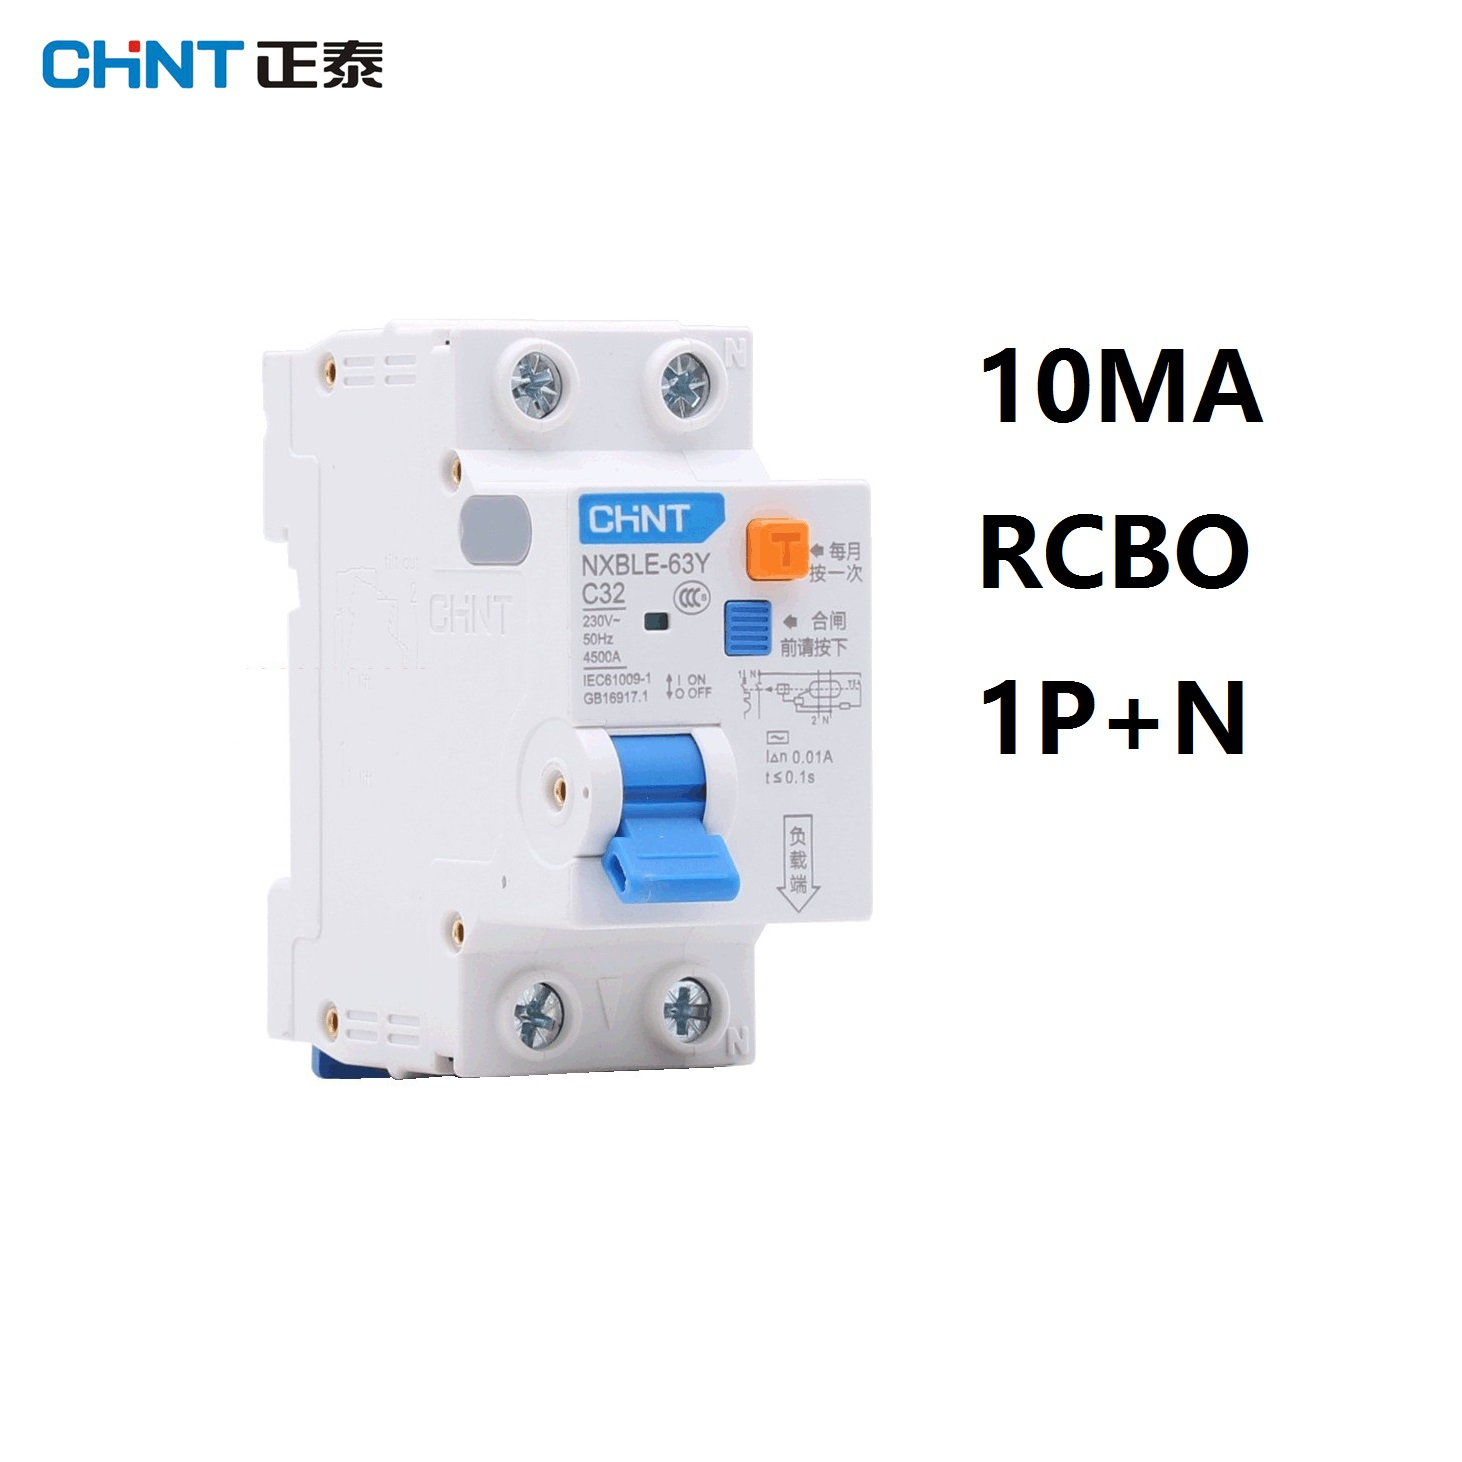 CHINT NXBLE-63Y 6A 10A 16A 32A 63A 10MA 0.01A RCBO 1P+N 230V Residual current Circuit breaker over current Leakage protectionCHINT NXBLE-63Y 6A 10A 16A 32A 63A 10MA 0.01A RCBO 1P+N 230V Residual current Circuit breaker over current Leakage protection